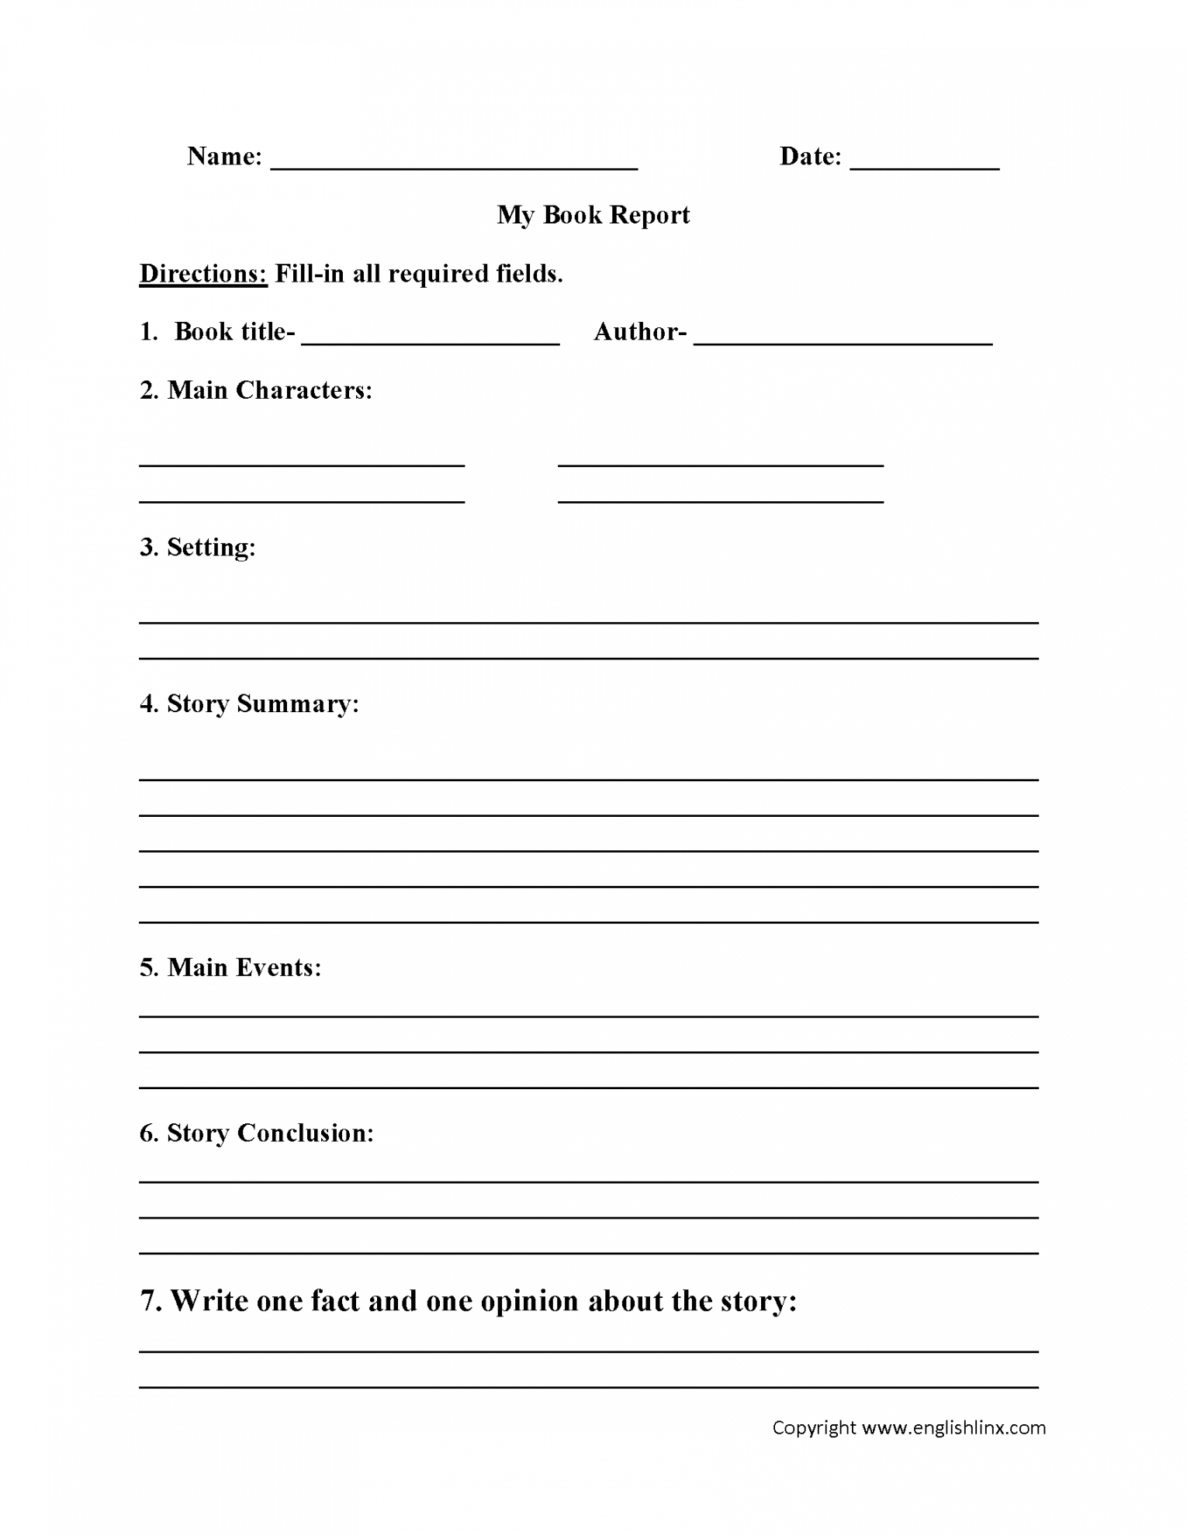 Book Report Template 8Th Grade with Book Report Template Grade 1   Book  report templates [ 1536 x 1187 Pixel ]